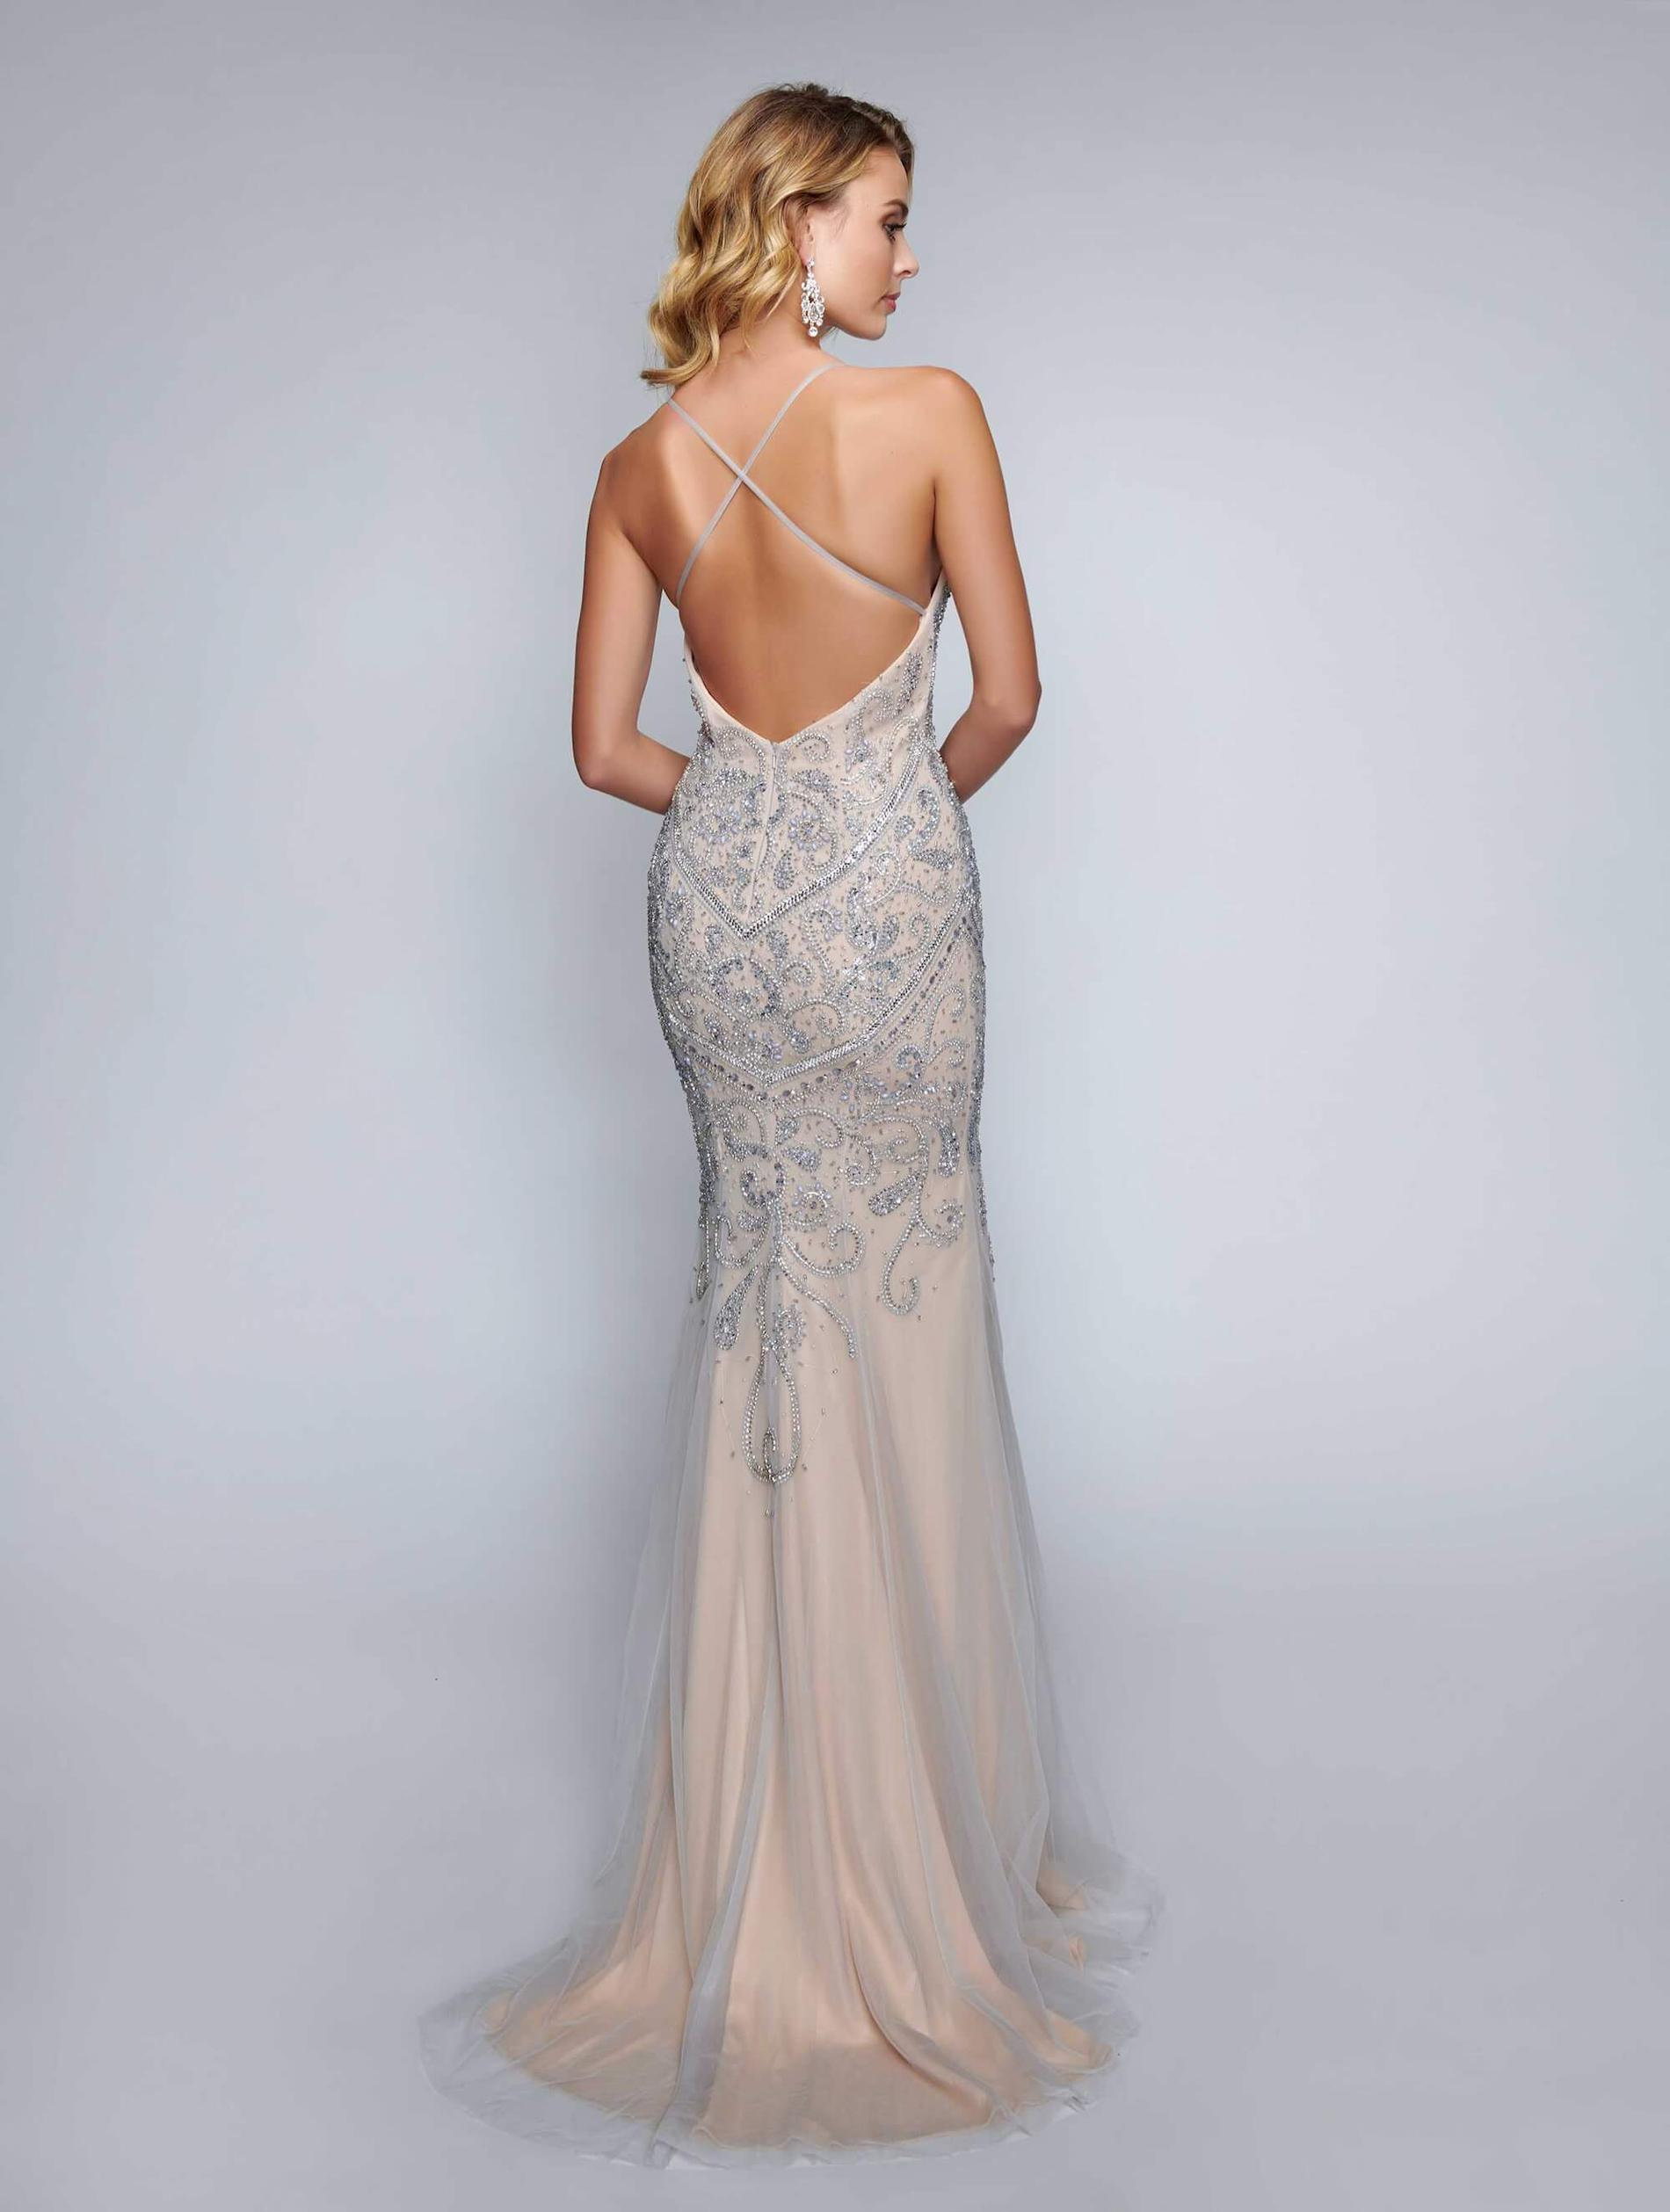 Style 8162 Nina Canacci Nude Size 8 Pageant Backless Tall Height Straight Dress on Queenly